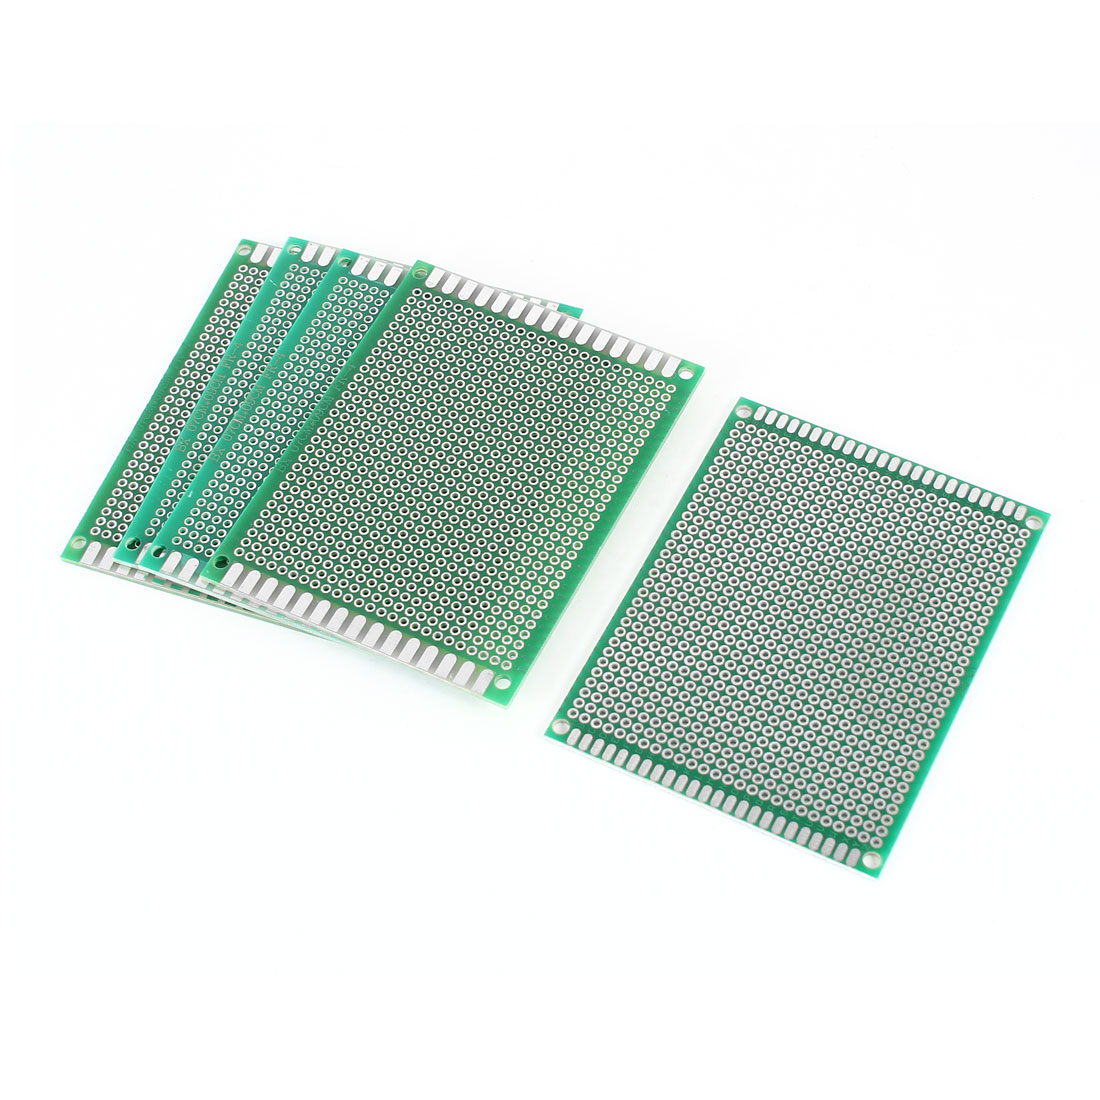 5 PCS 7cm x 9cm Single Sided Green FR-4 Universal Prototype Paper PCB Print Circuit Board for DIY